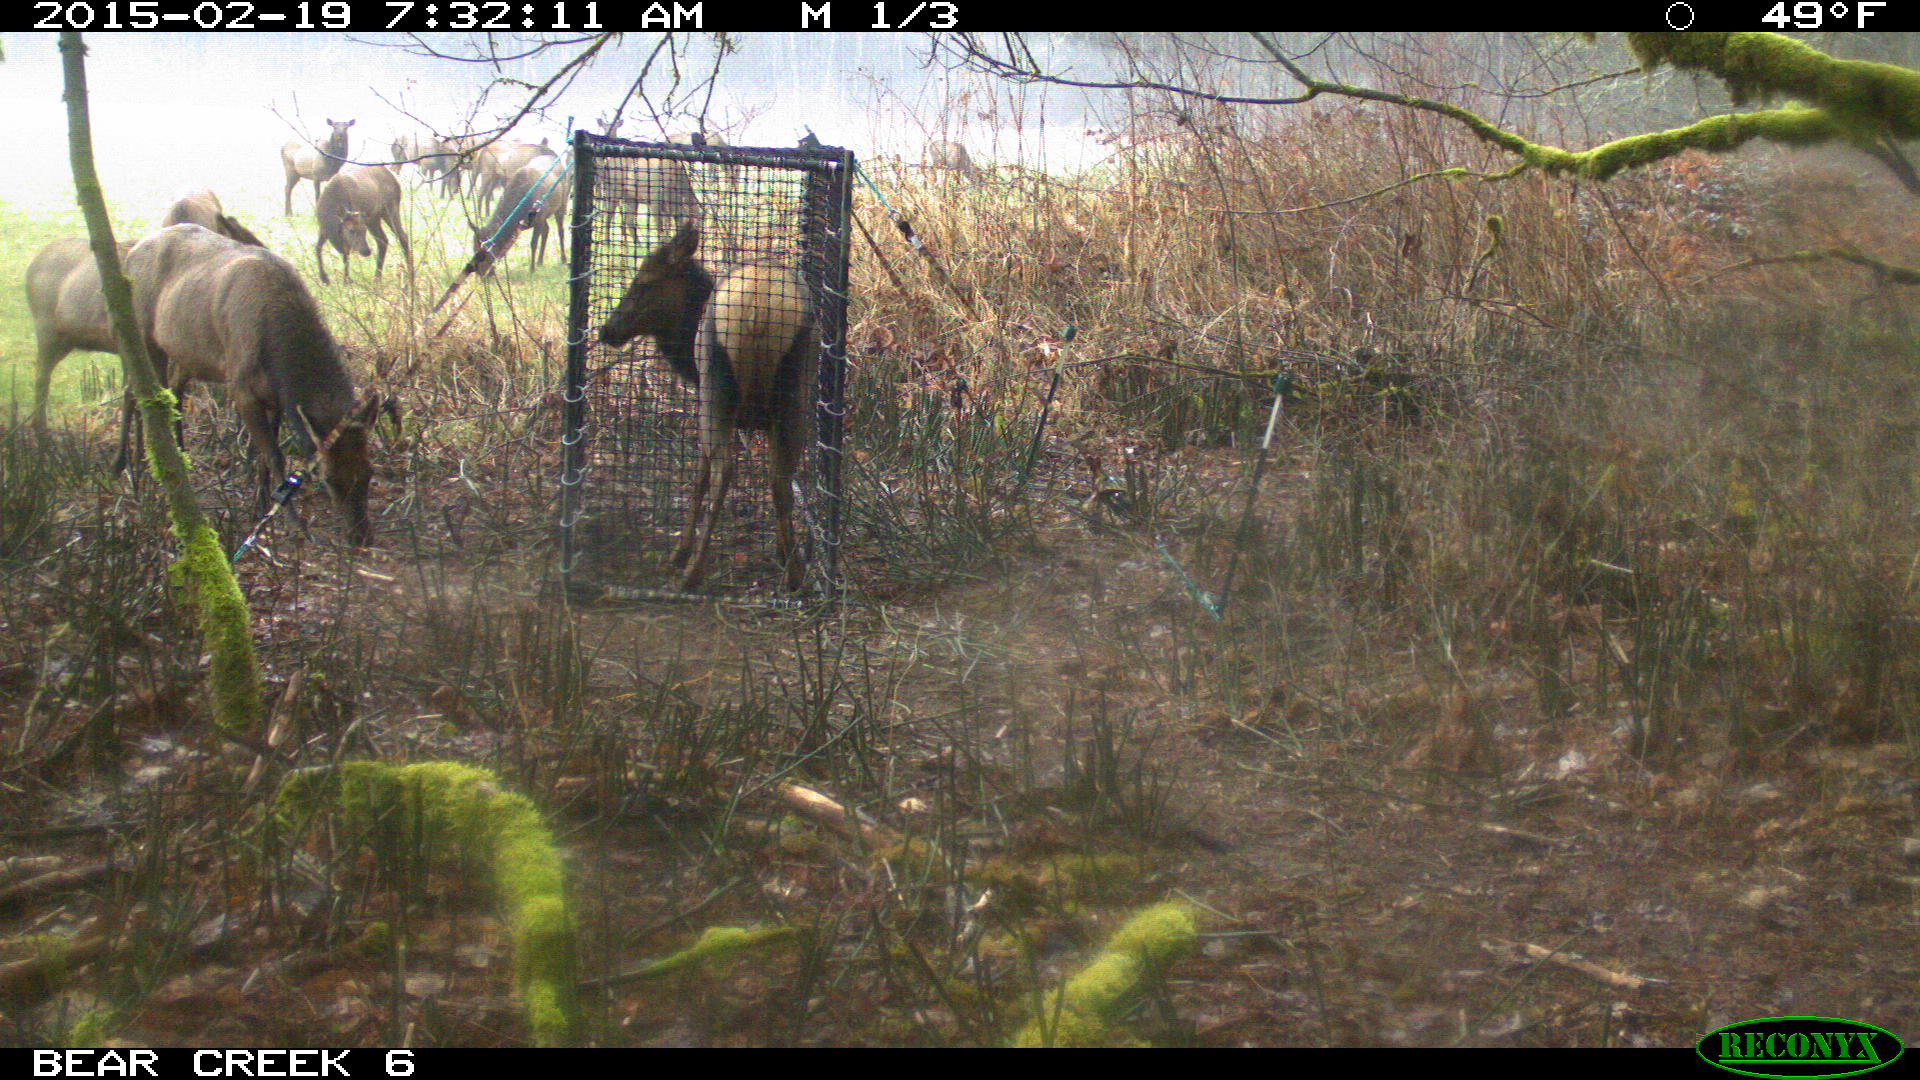 Tulalip Tribes Natural Resources Department news link to Big Fence to Protect Skagit Farm from Elk Herd with image of elk by fencing